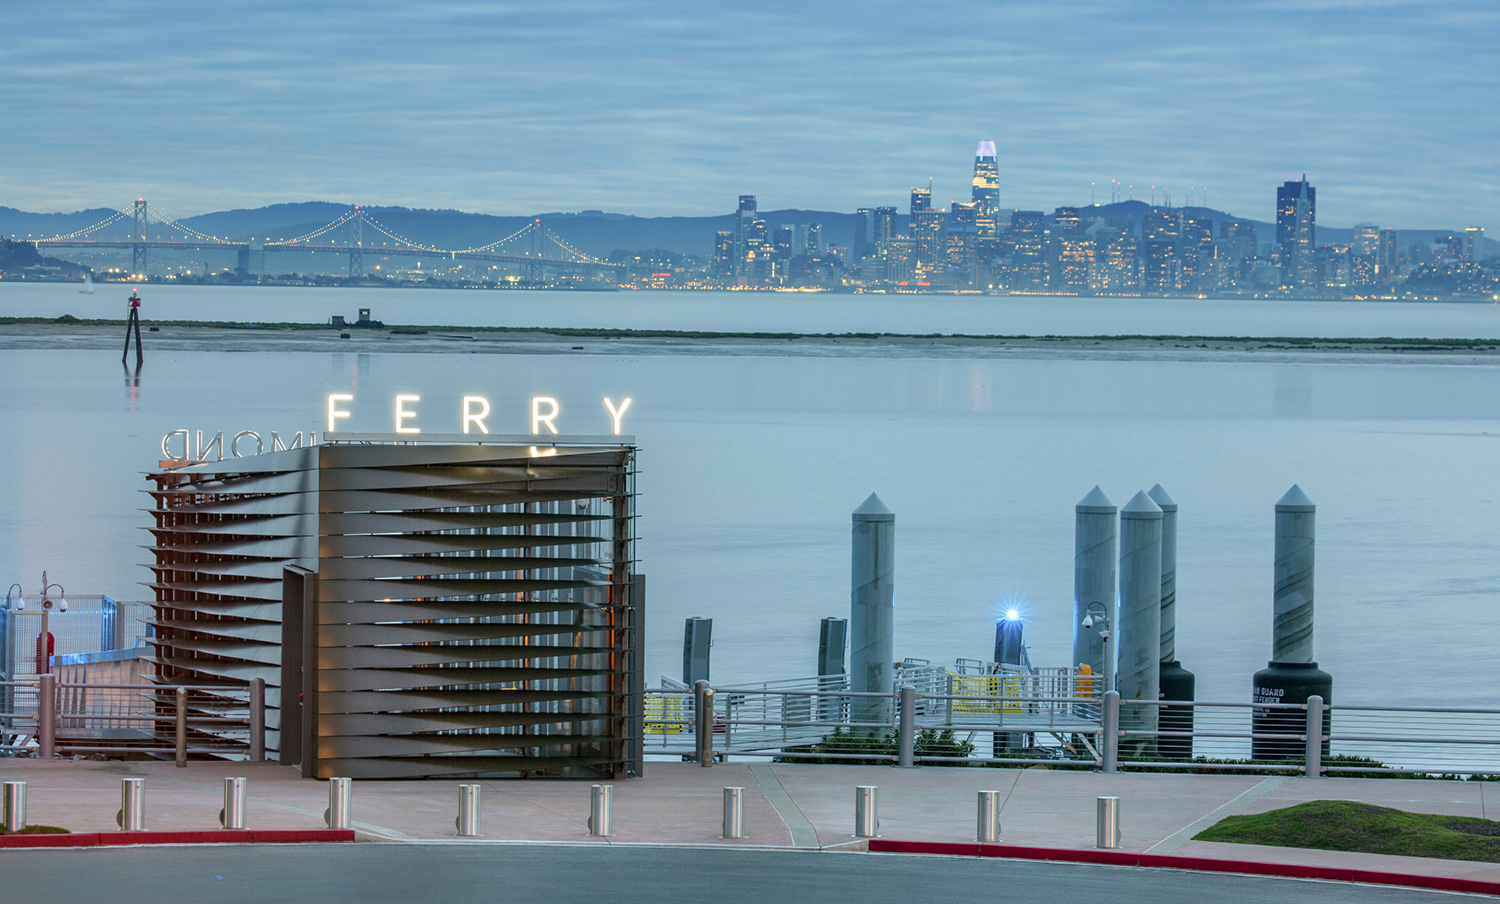 Terminal entrance at dusk, with the San Francisco skyline beyond. Billy Hustace